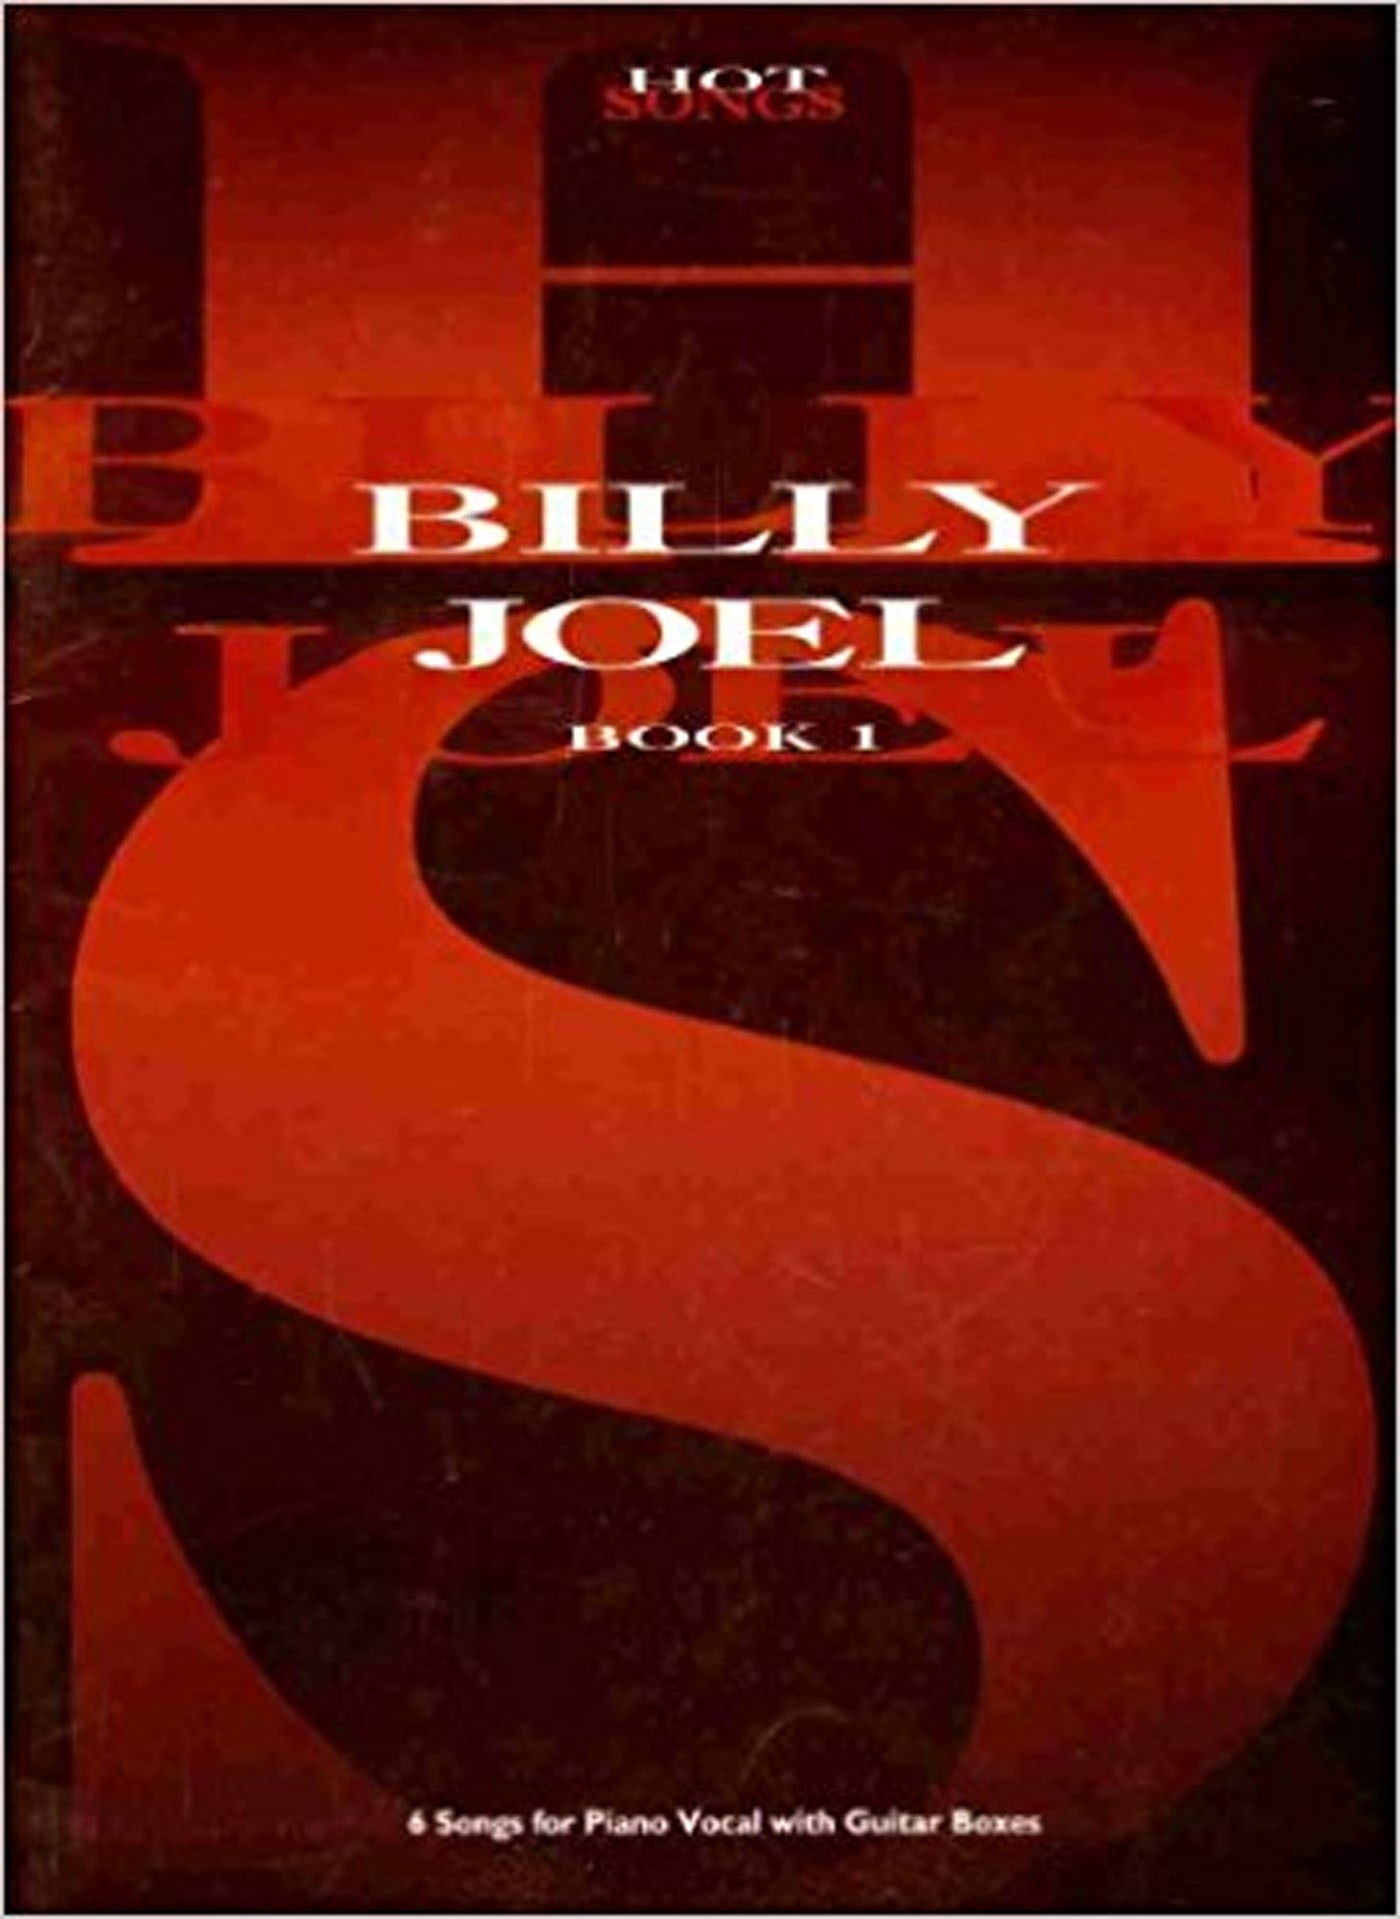 Billy Joel Hot Songs Book 1 Piano Vocal Guitar Chords Boxes S135